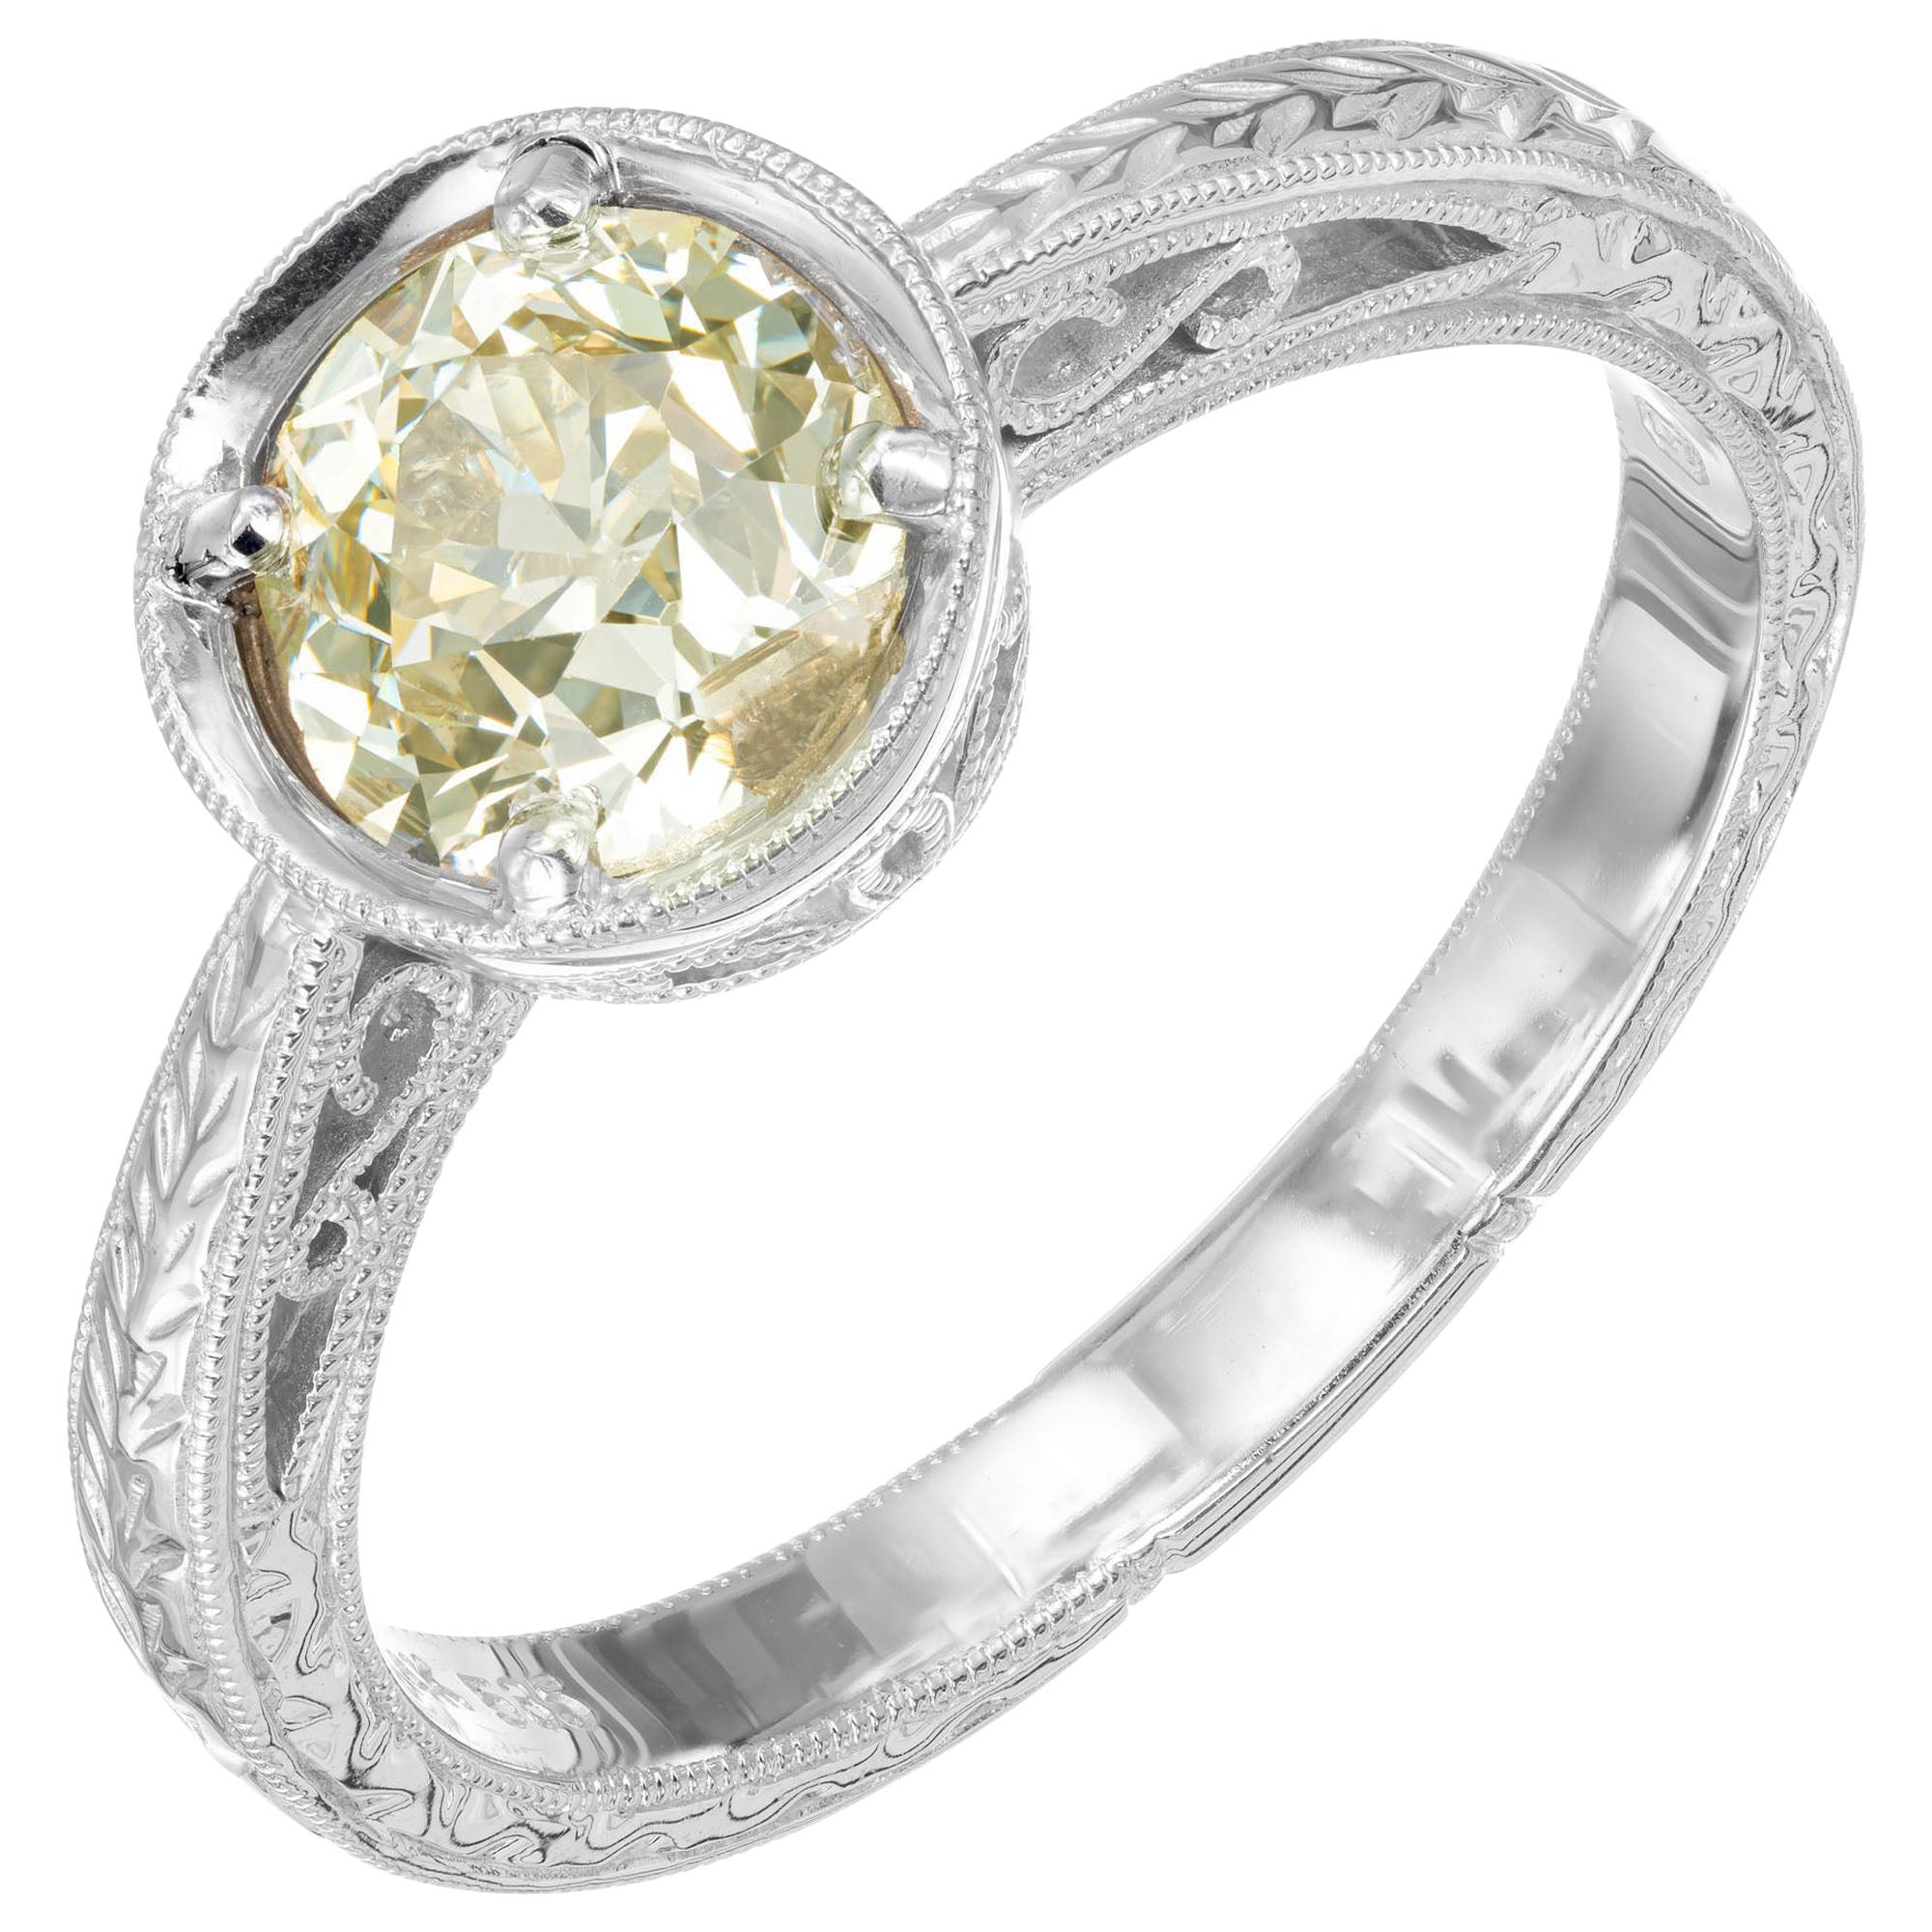 EGL Certified 1.11 Carat Diamond White Gold Solitaire Engagement Ring